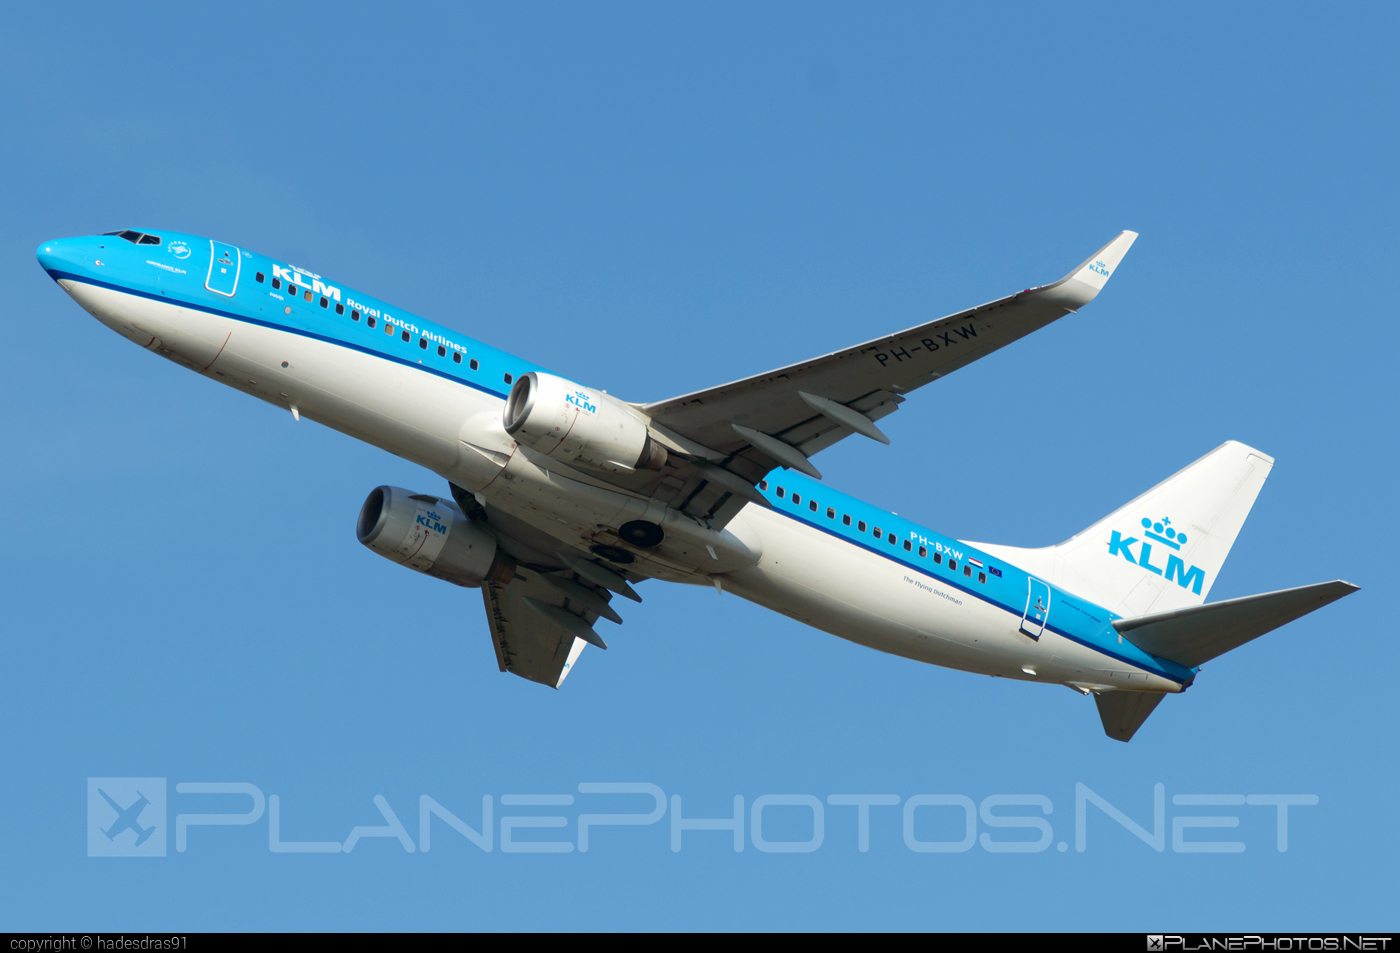 Boeing 737-800 - PH-BXW operated by KLM Royal Dutch Airlines #b737 #b737nextgen #b737ng #boeing #boeing737 #klm #klmroyaldutchairlines #royaldutchairlines